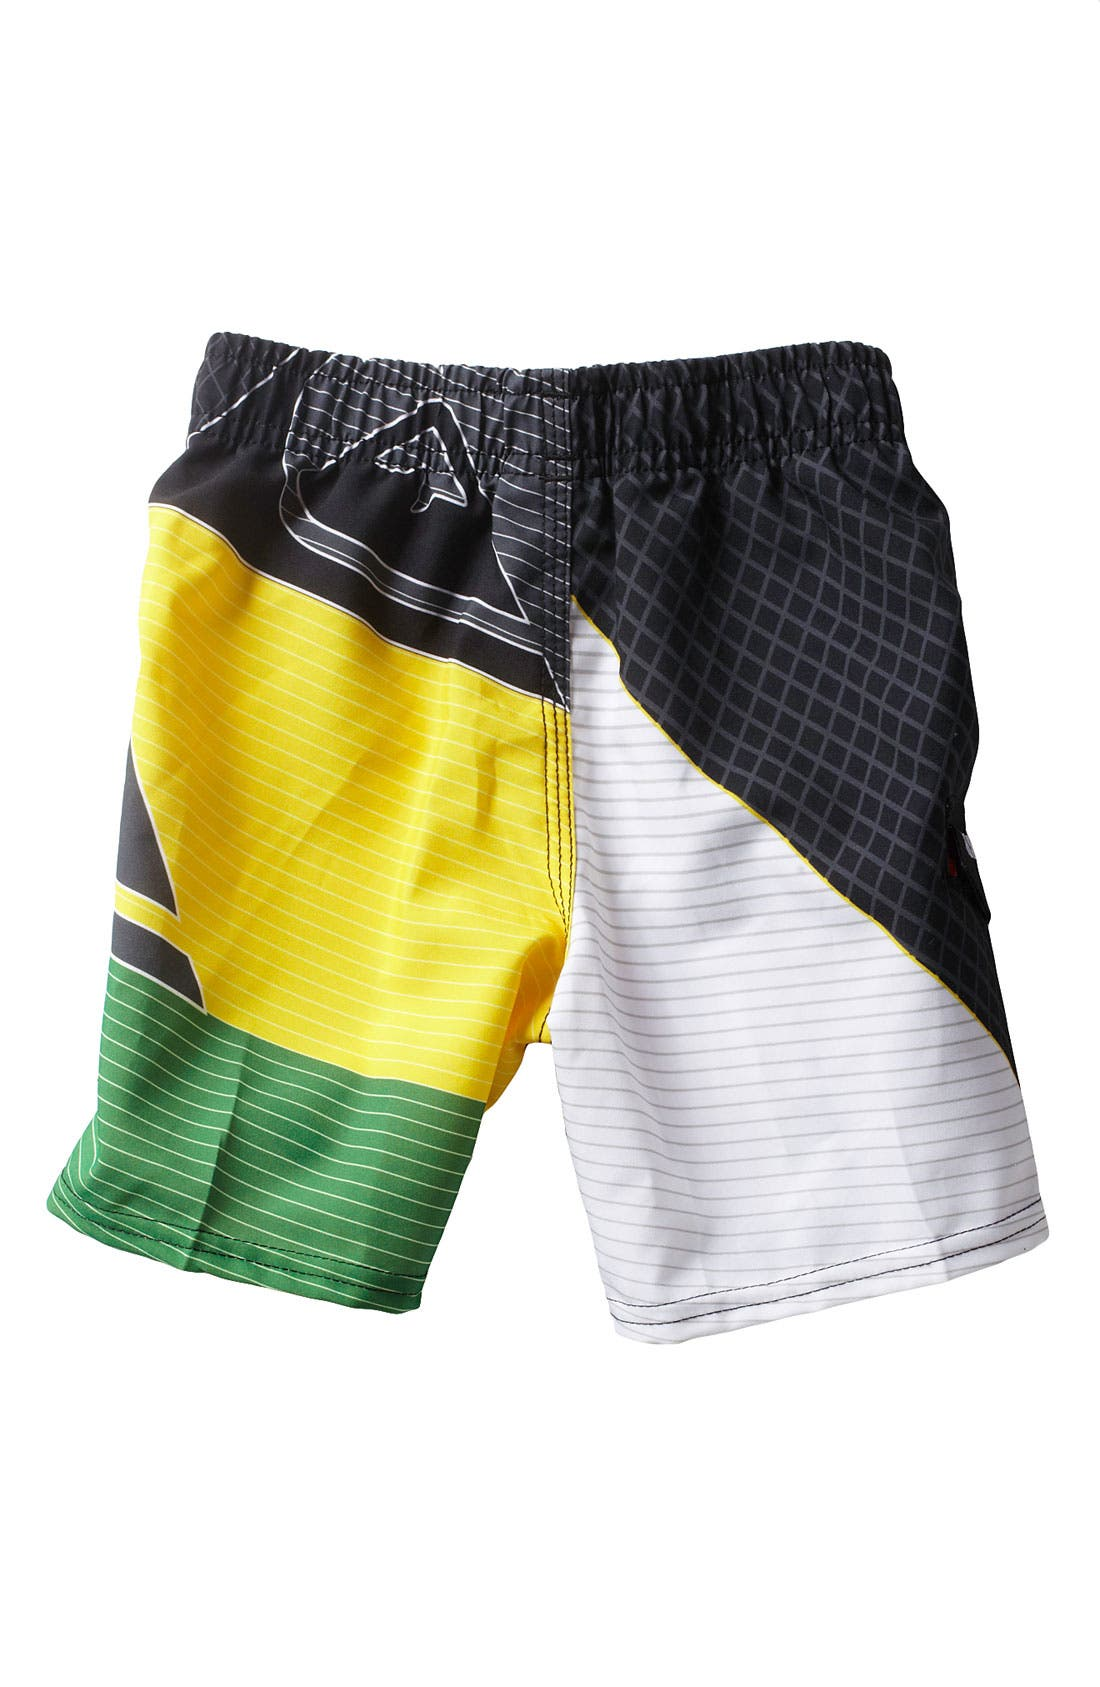 Alternate Image 2  - Quiksilver 'Finish Line' Volley Shorts (Toddler)